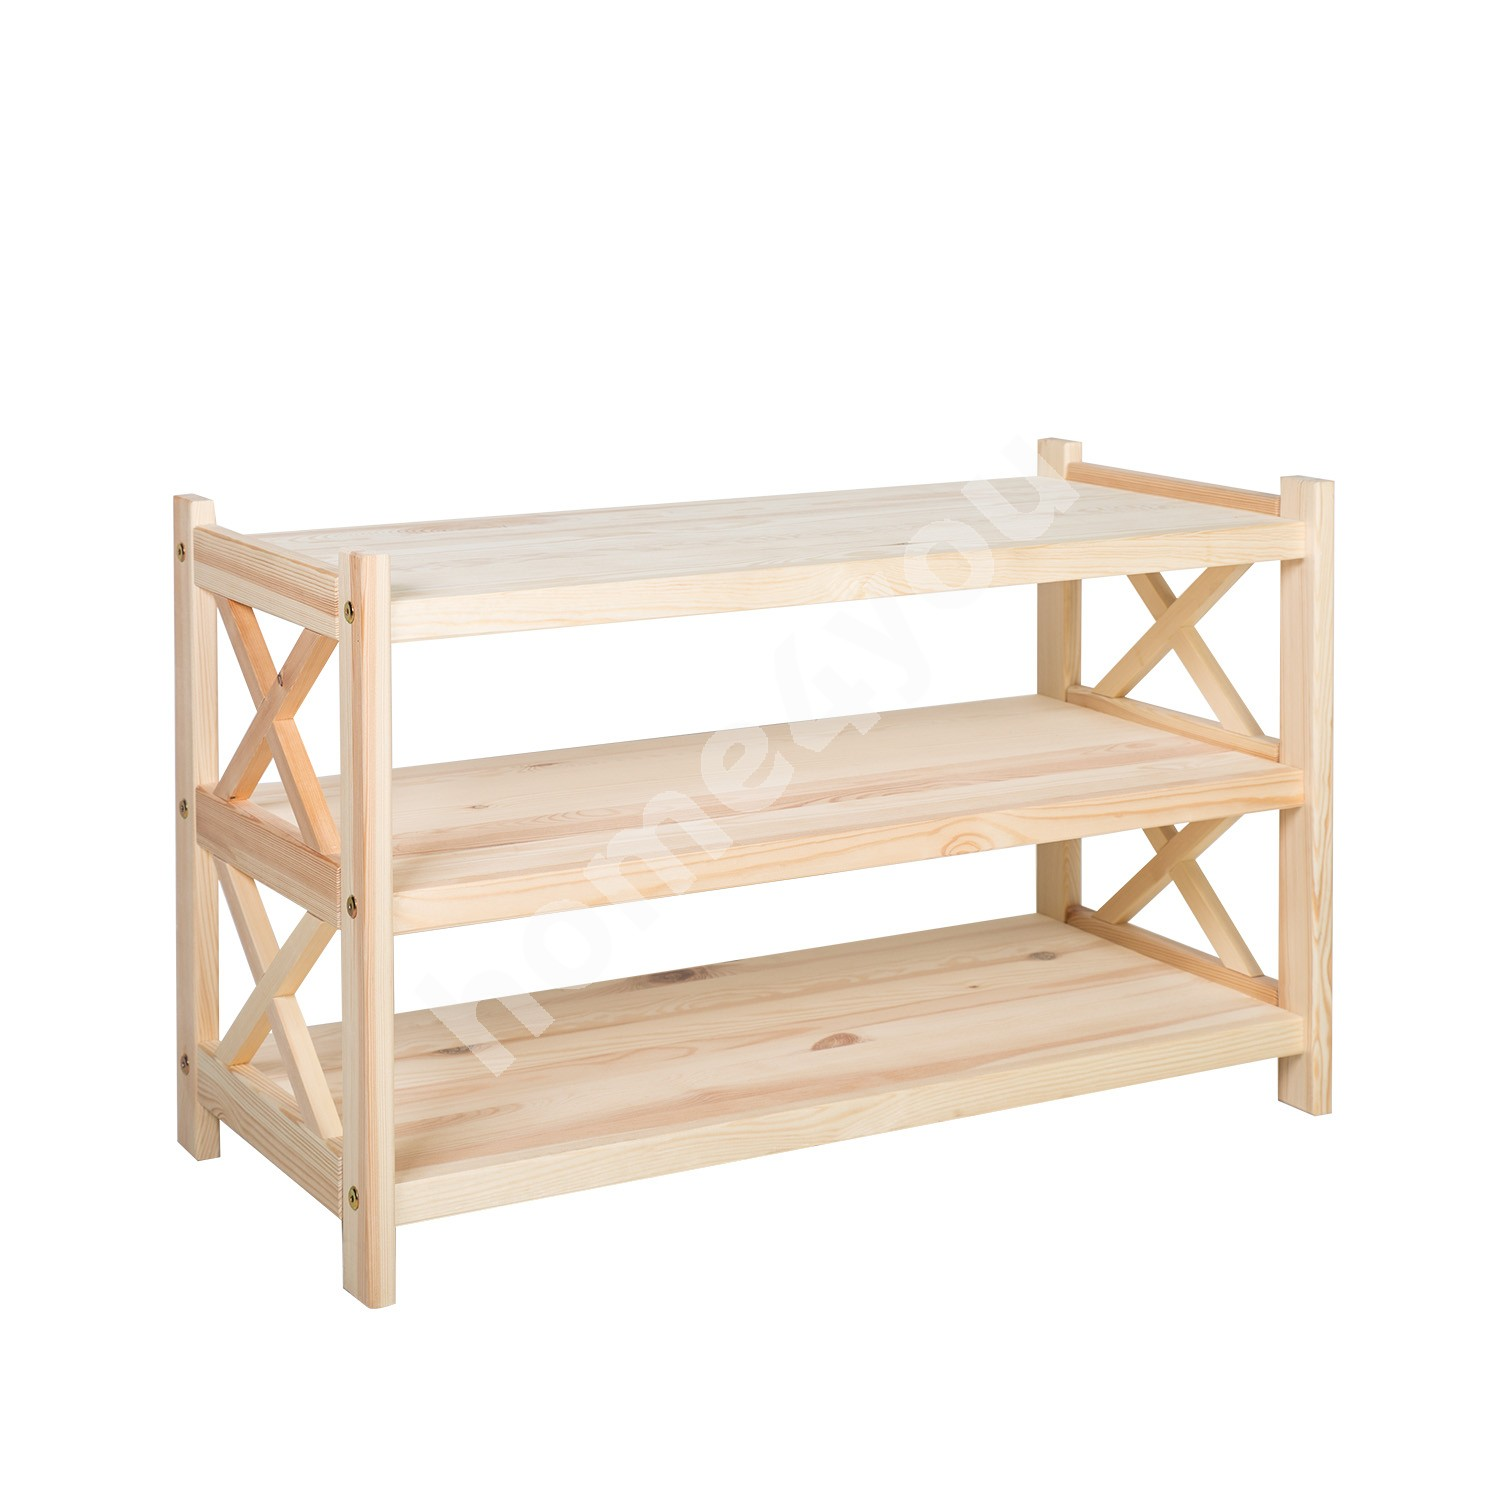 Shoe rack ALEX 3-ne, 80x36,5xH49cm, wood: pine, color: natural